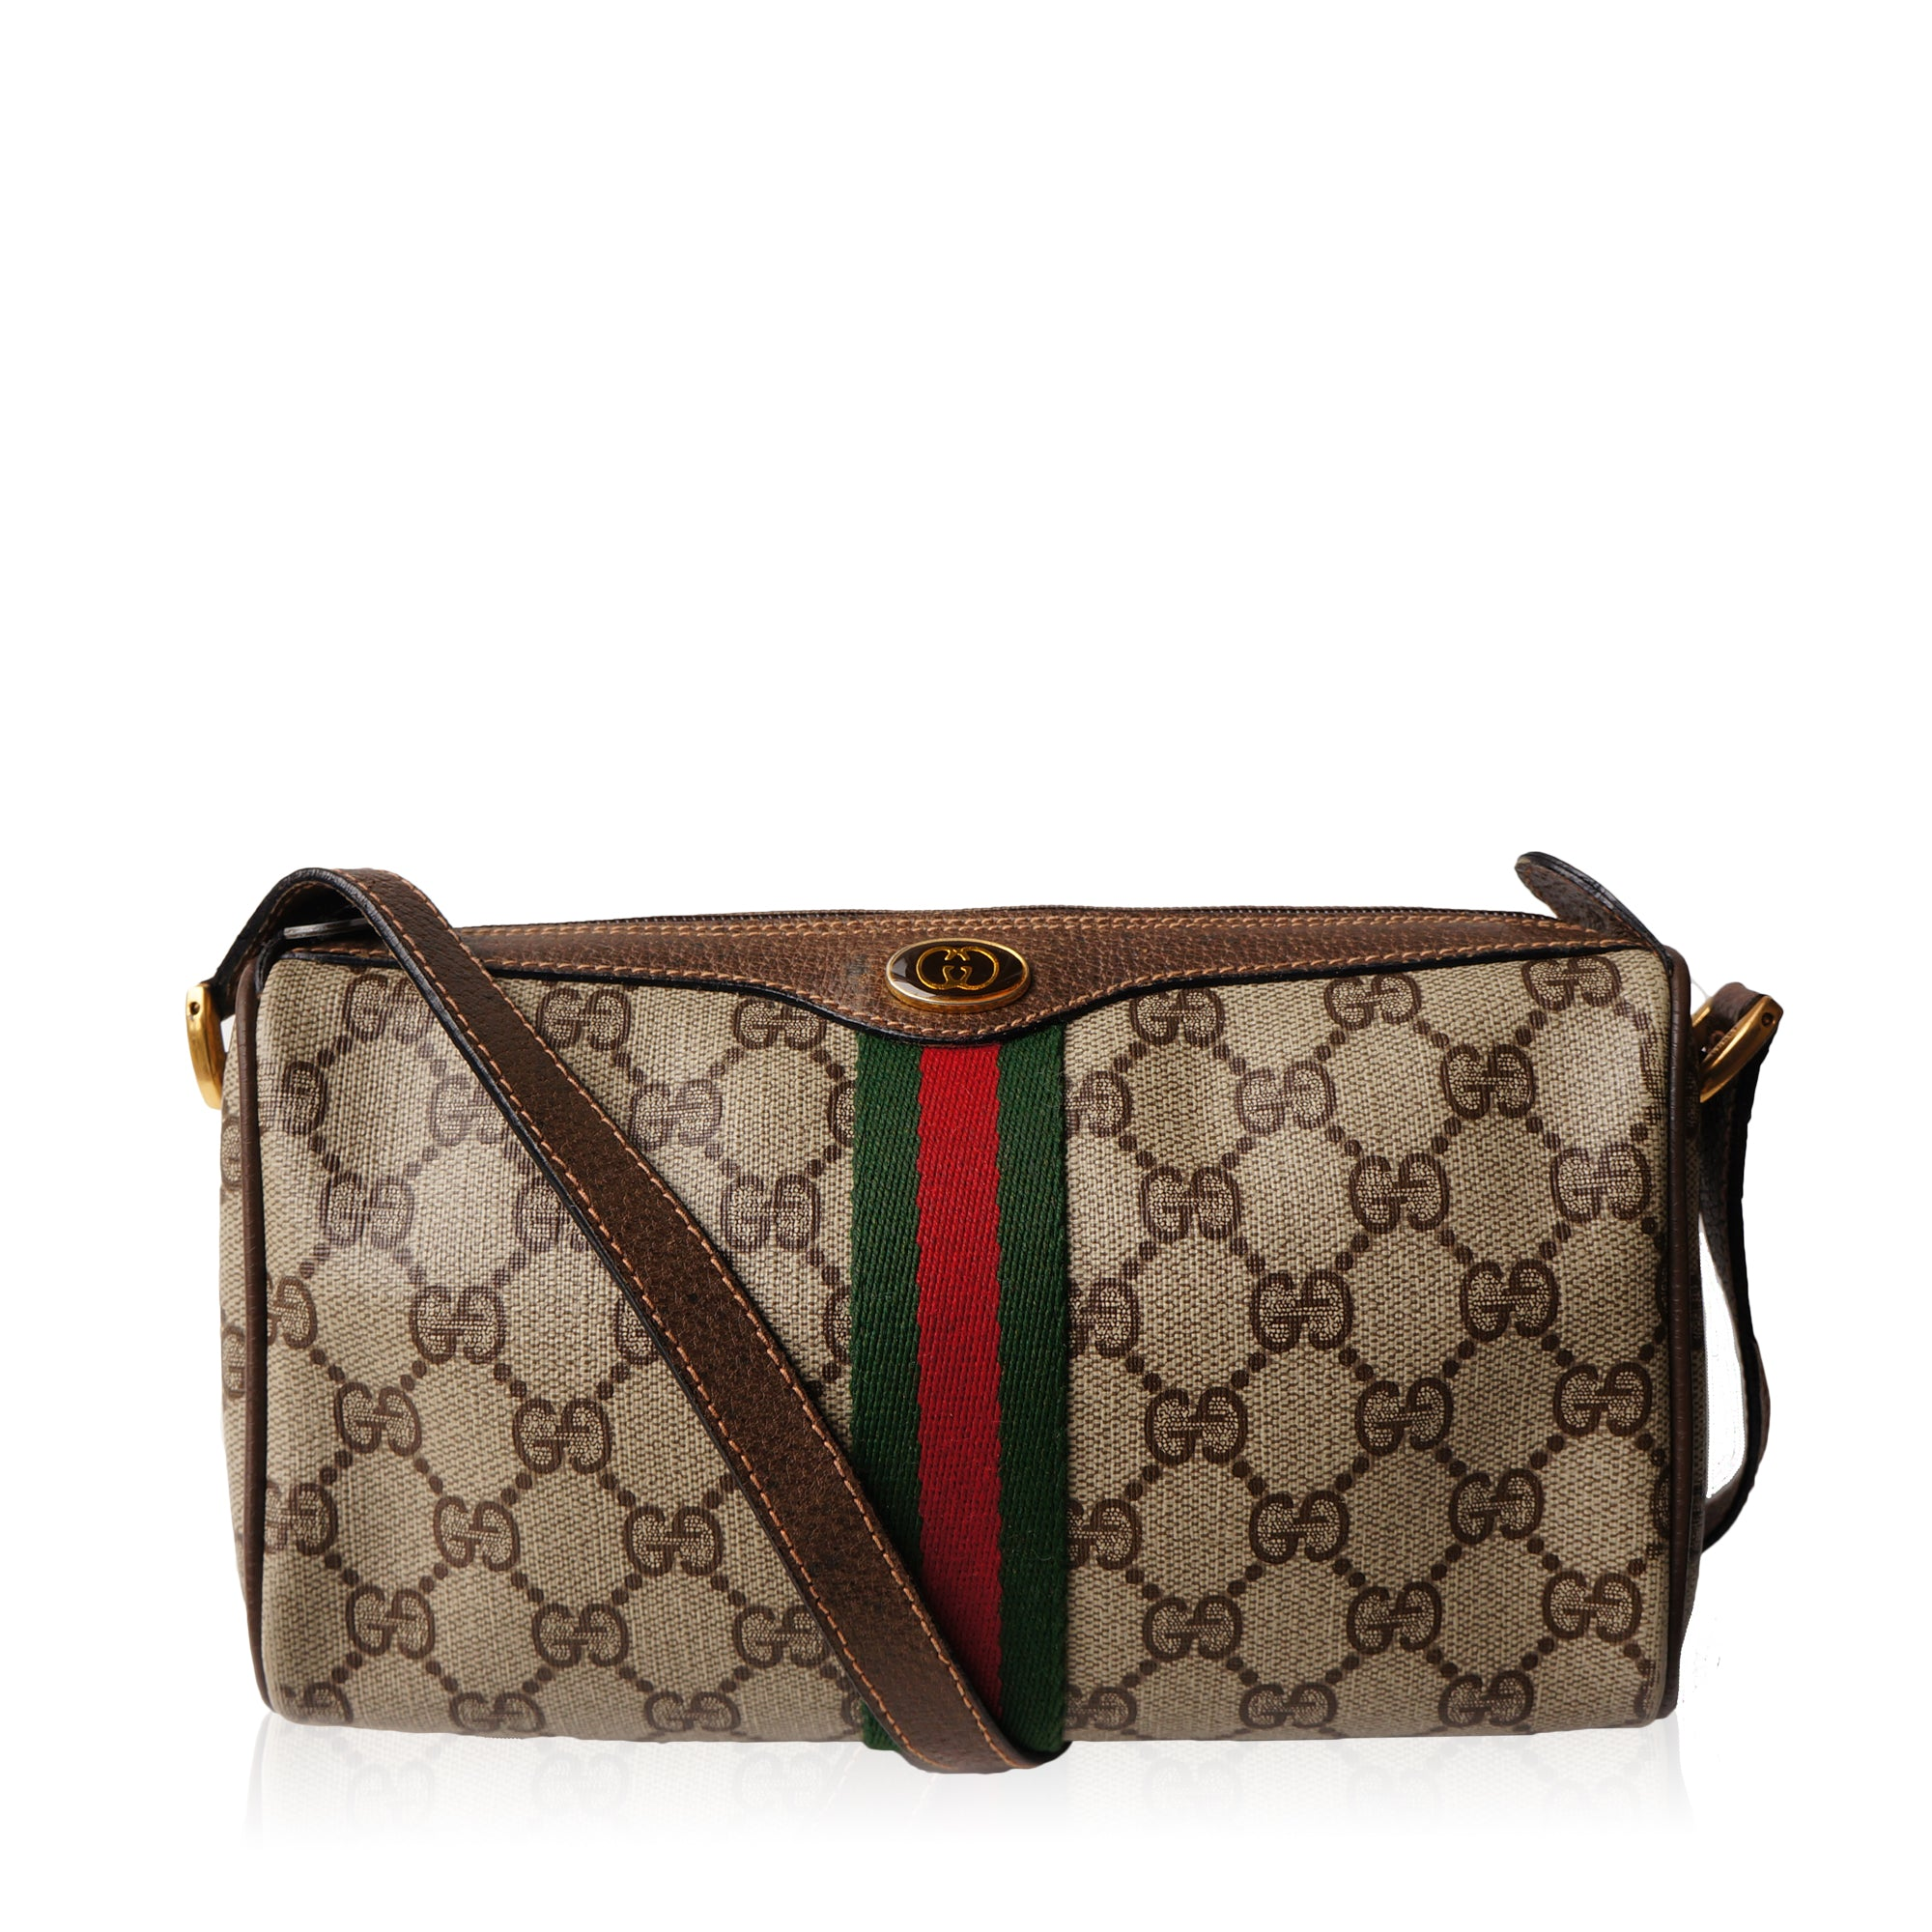 dc8ccb3ea23a GUCCI GG SUPREME WEB CROSSBODY BAG Shop online the best value on authentic  designer used preowned ...